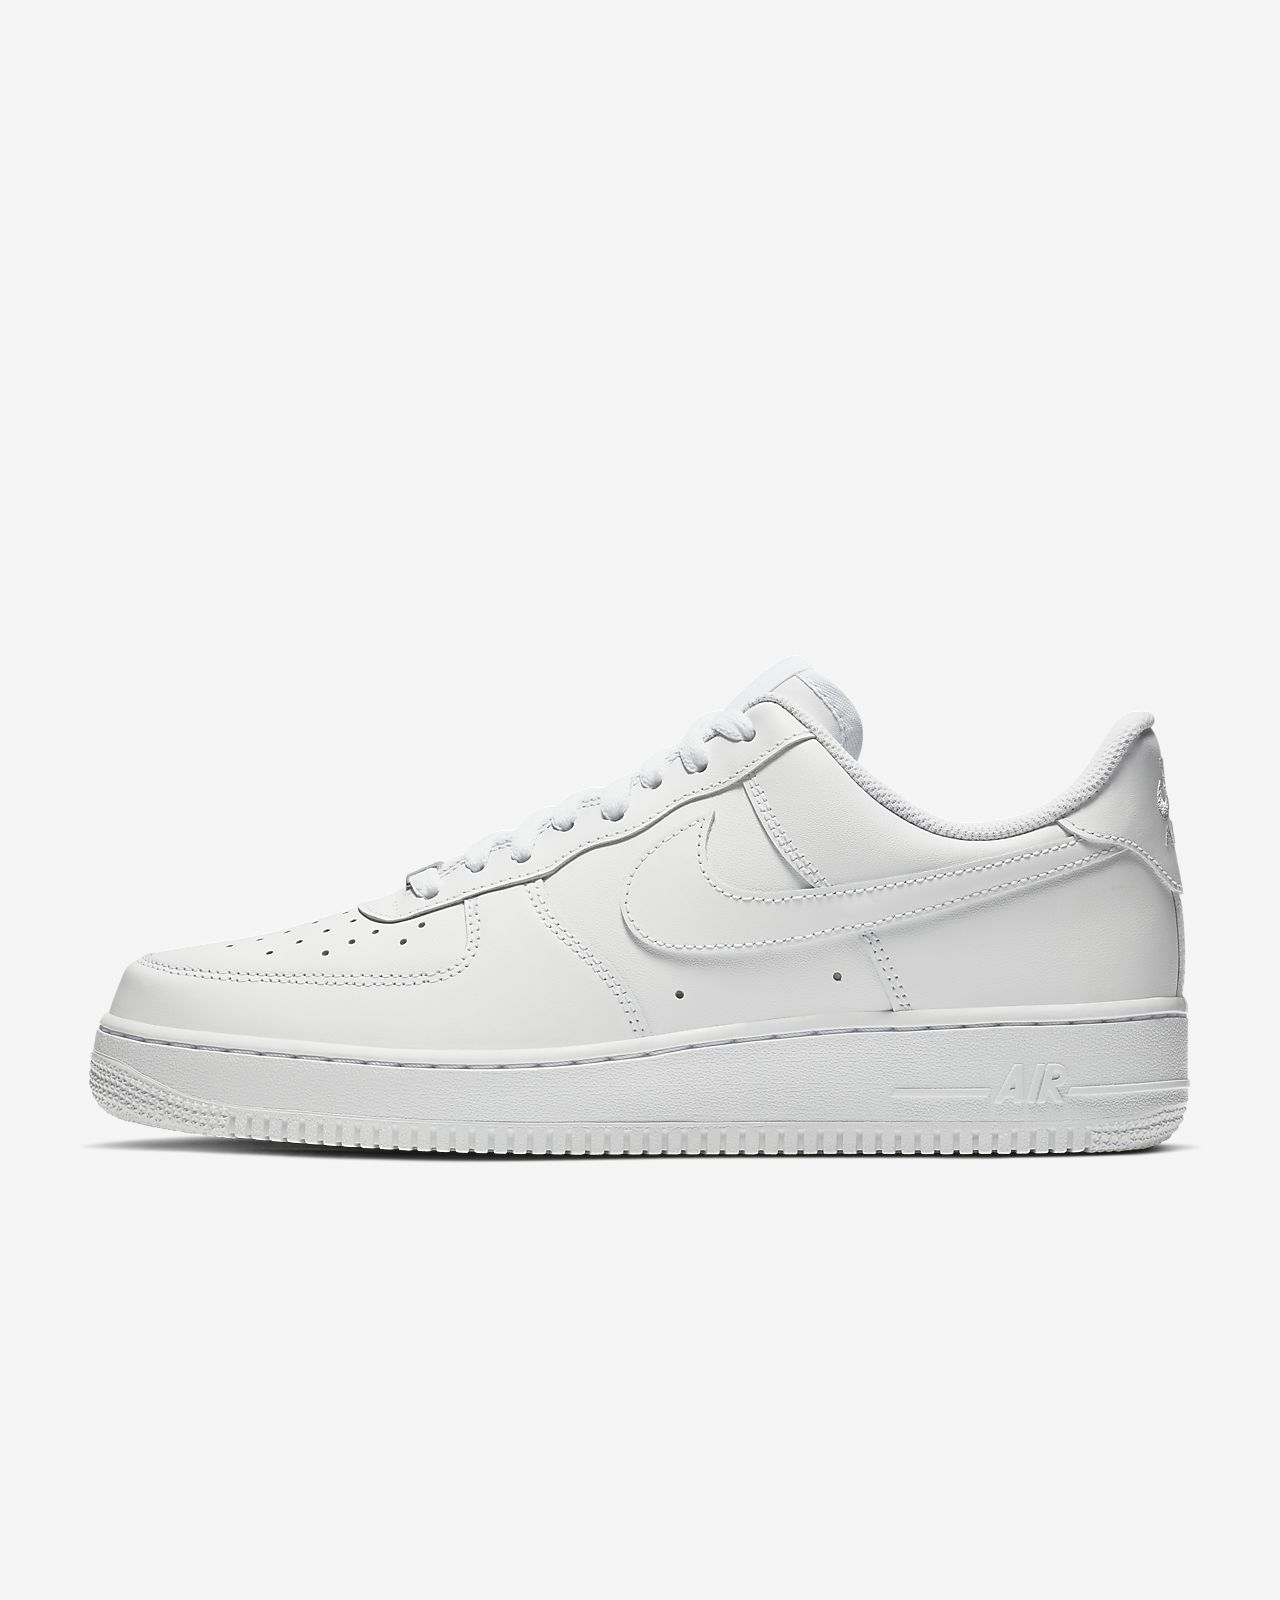 new product dd9a2 84a10 Low Resolution Nike Air Force 1  07 Shoe Nike Air Force 1  07 Shoe